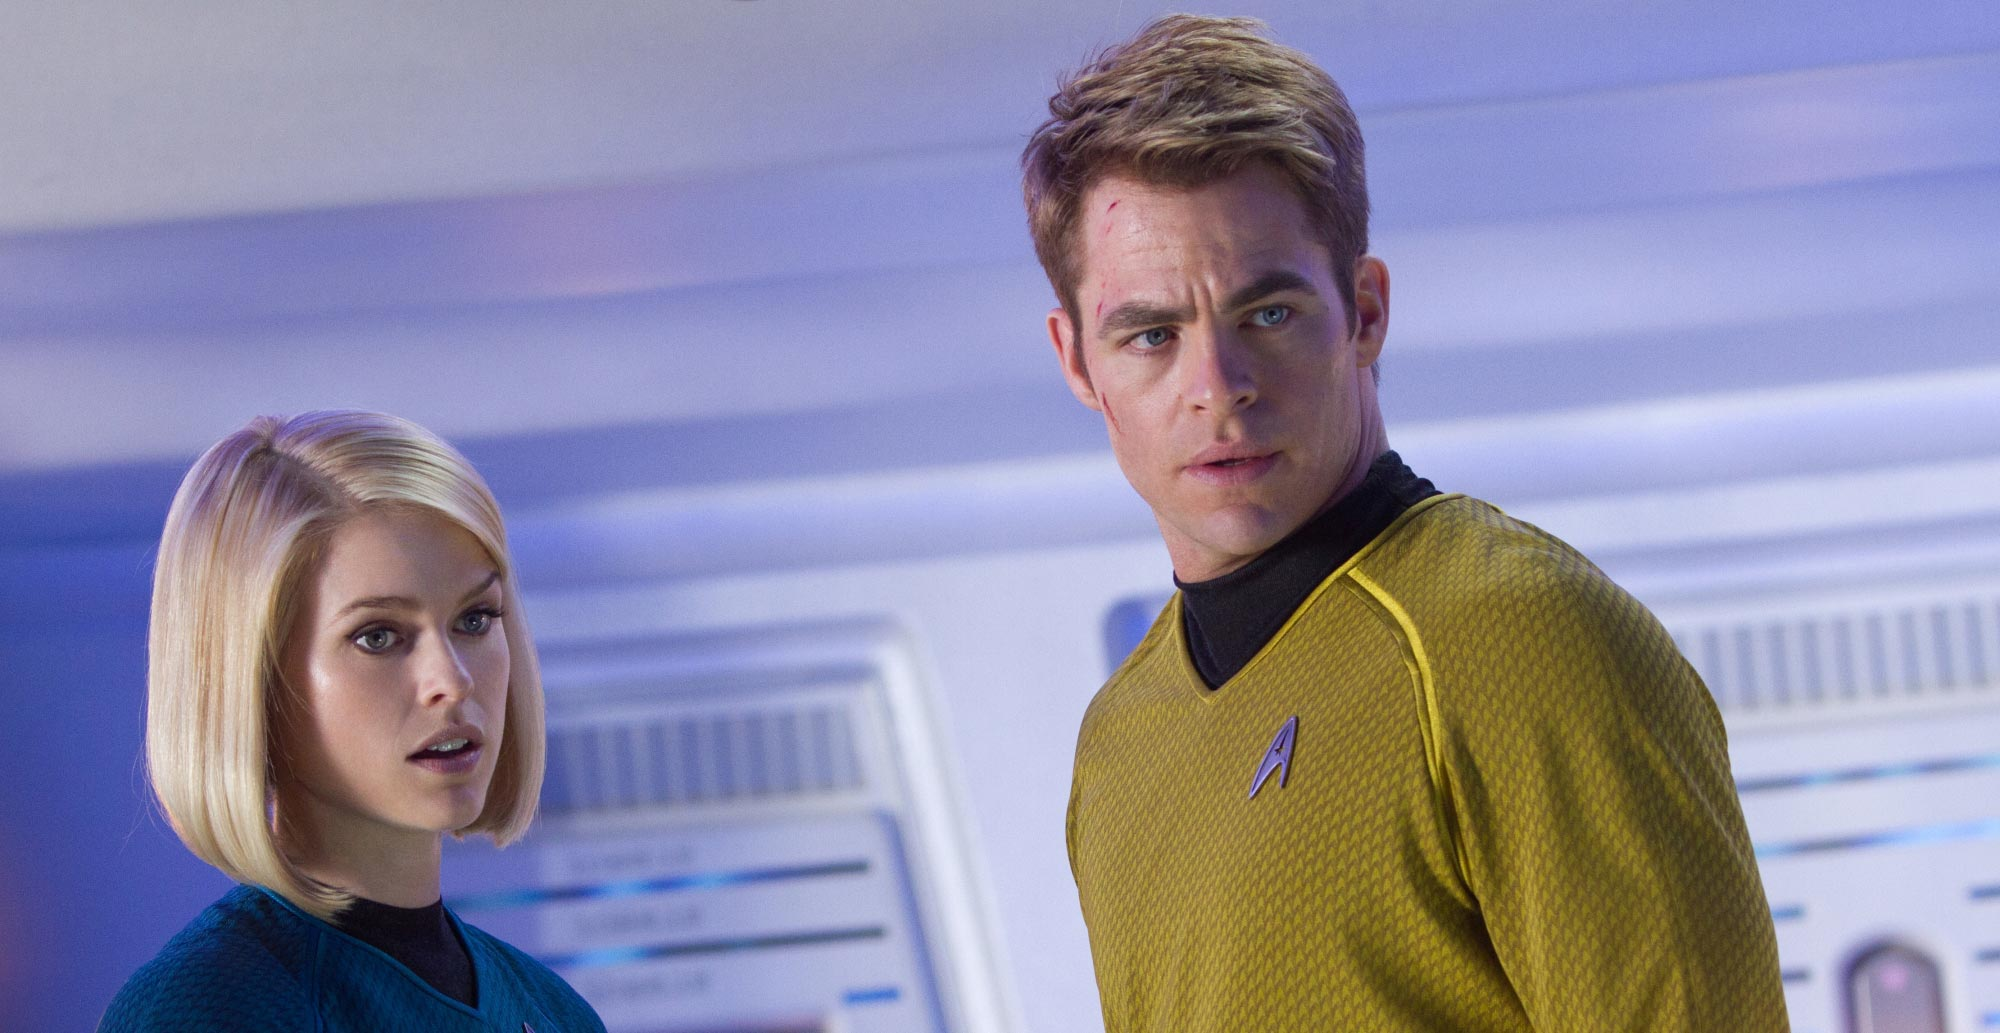 star-trek-into-darkness-chris-pine-alice-eve.jpg